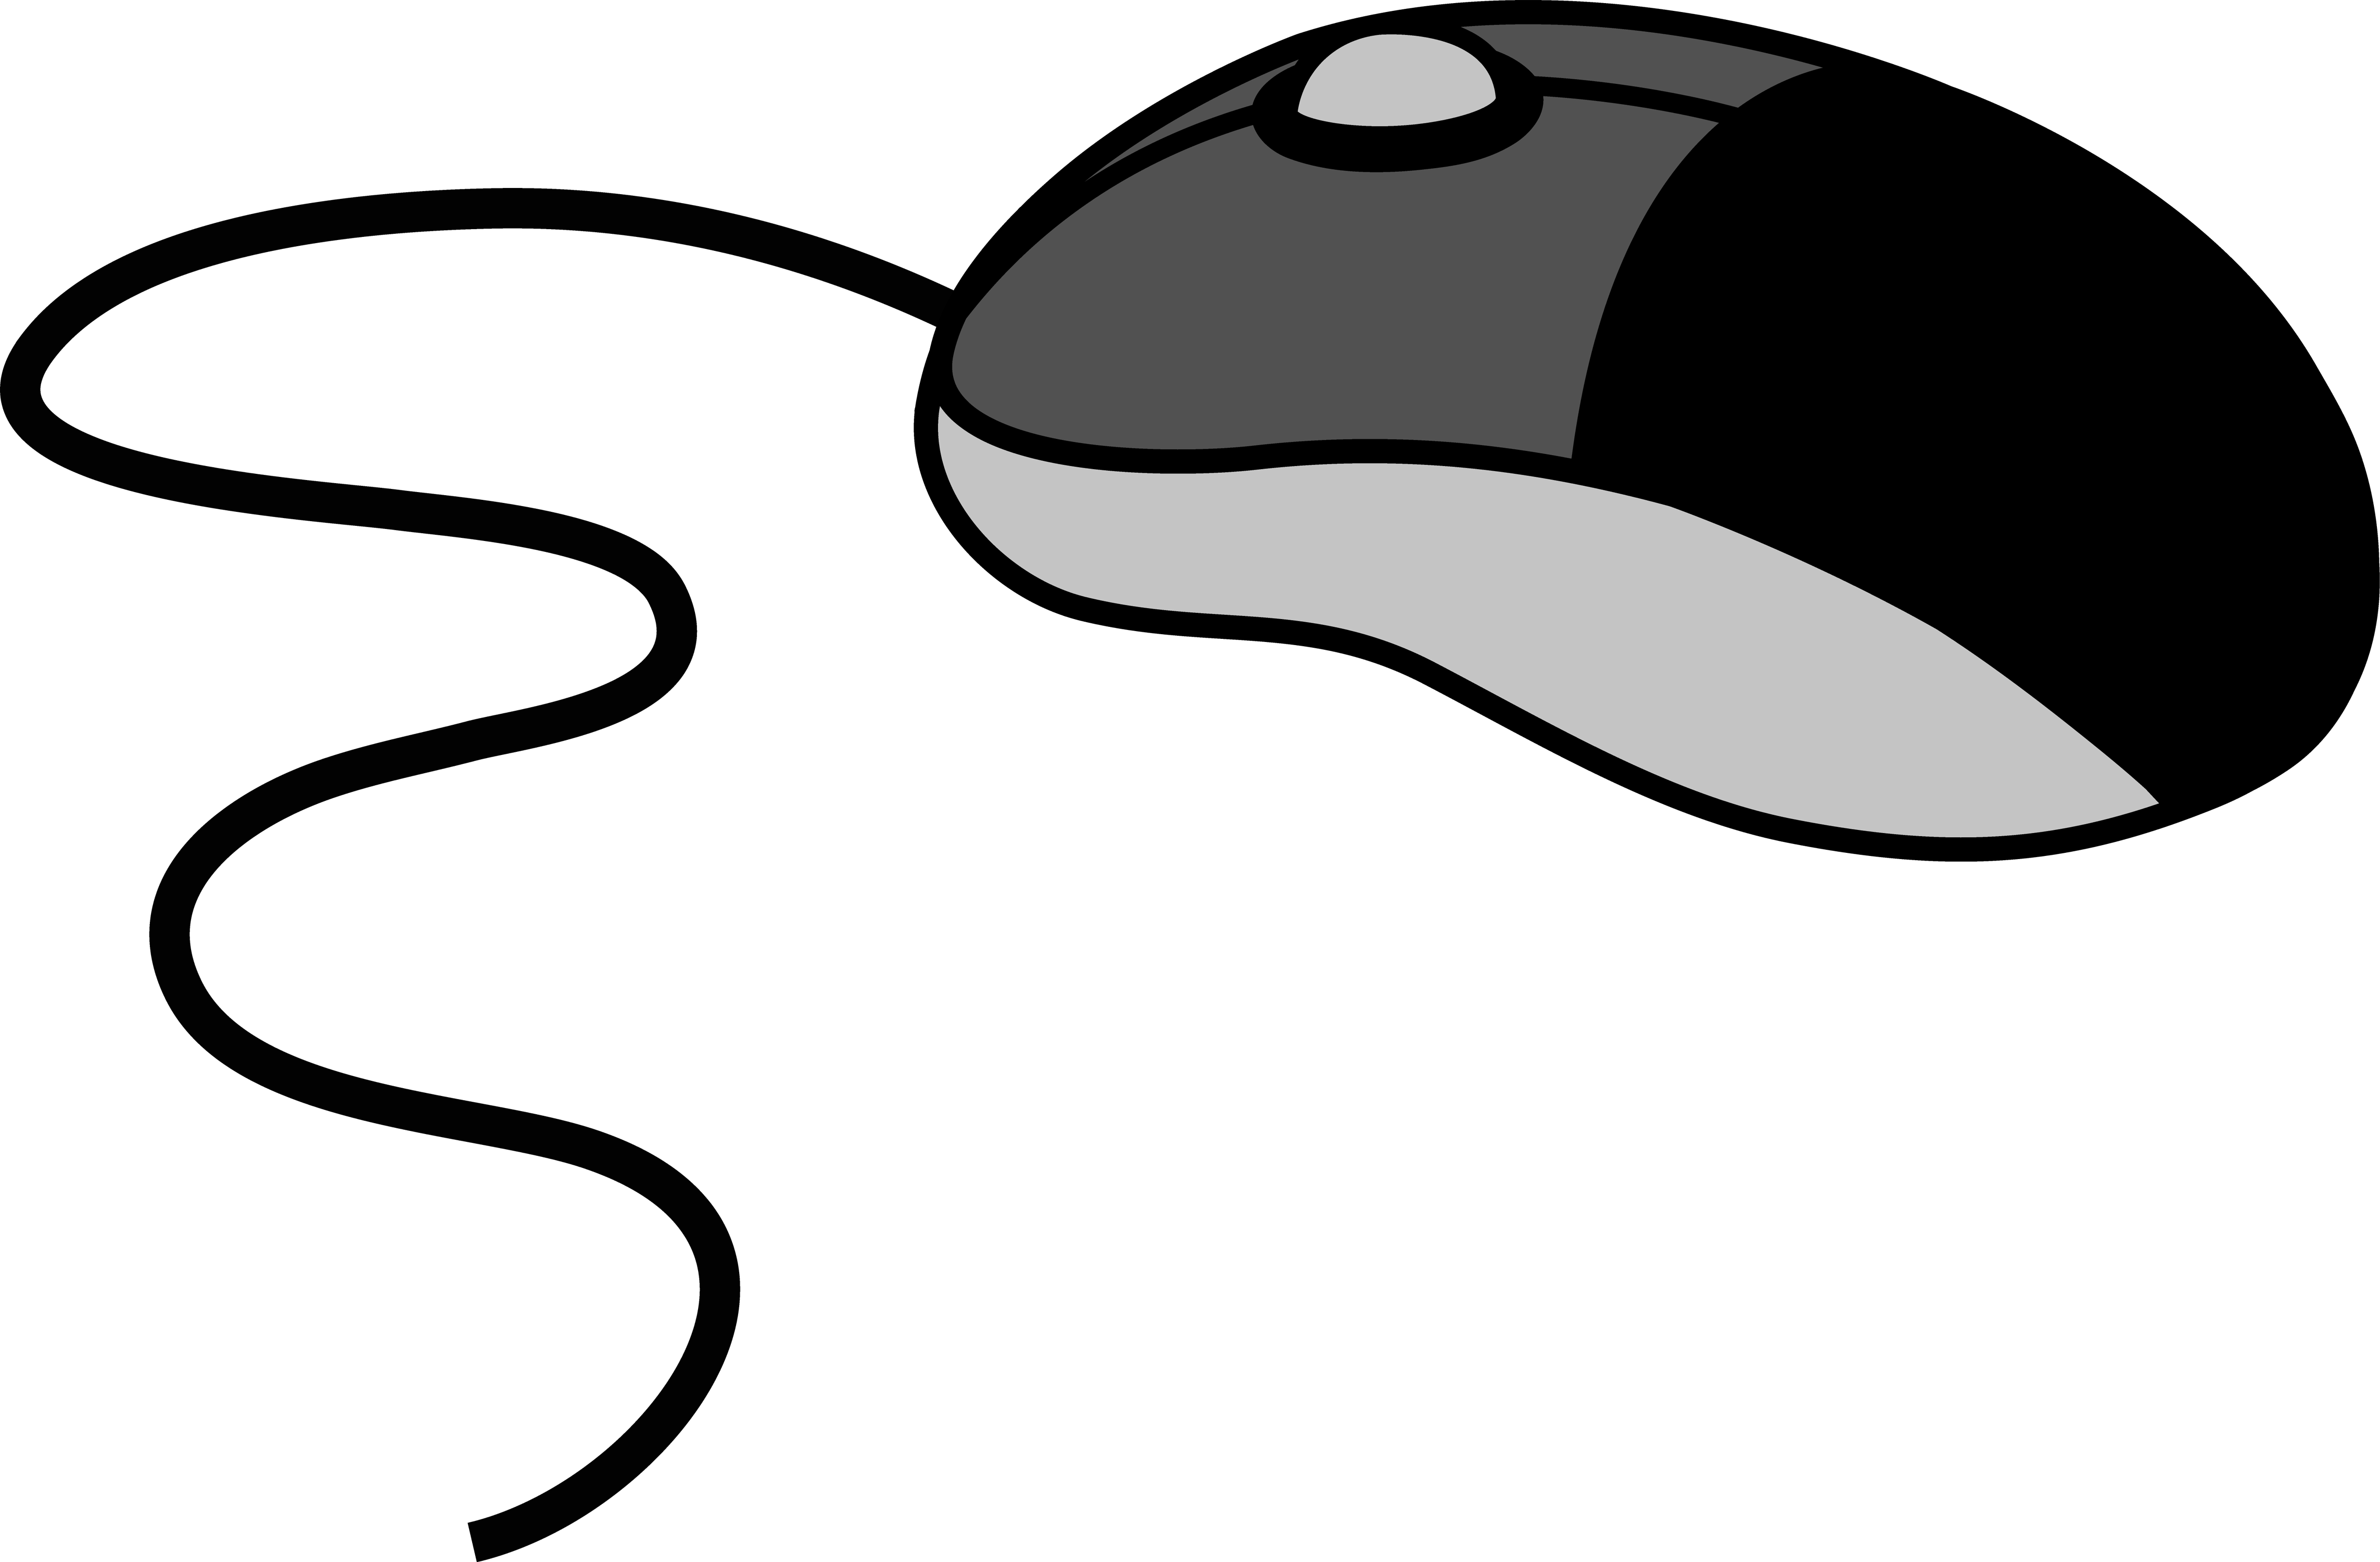 Gray Computer Mouse.